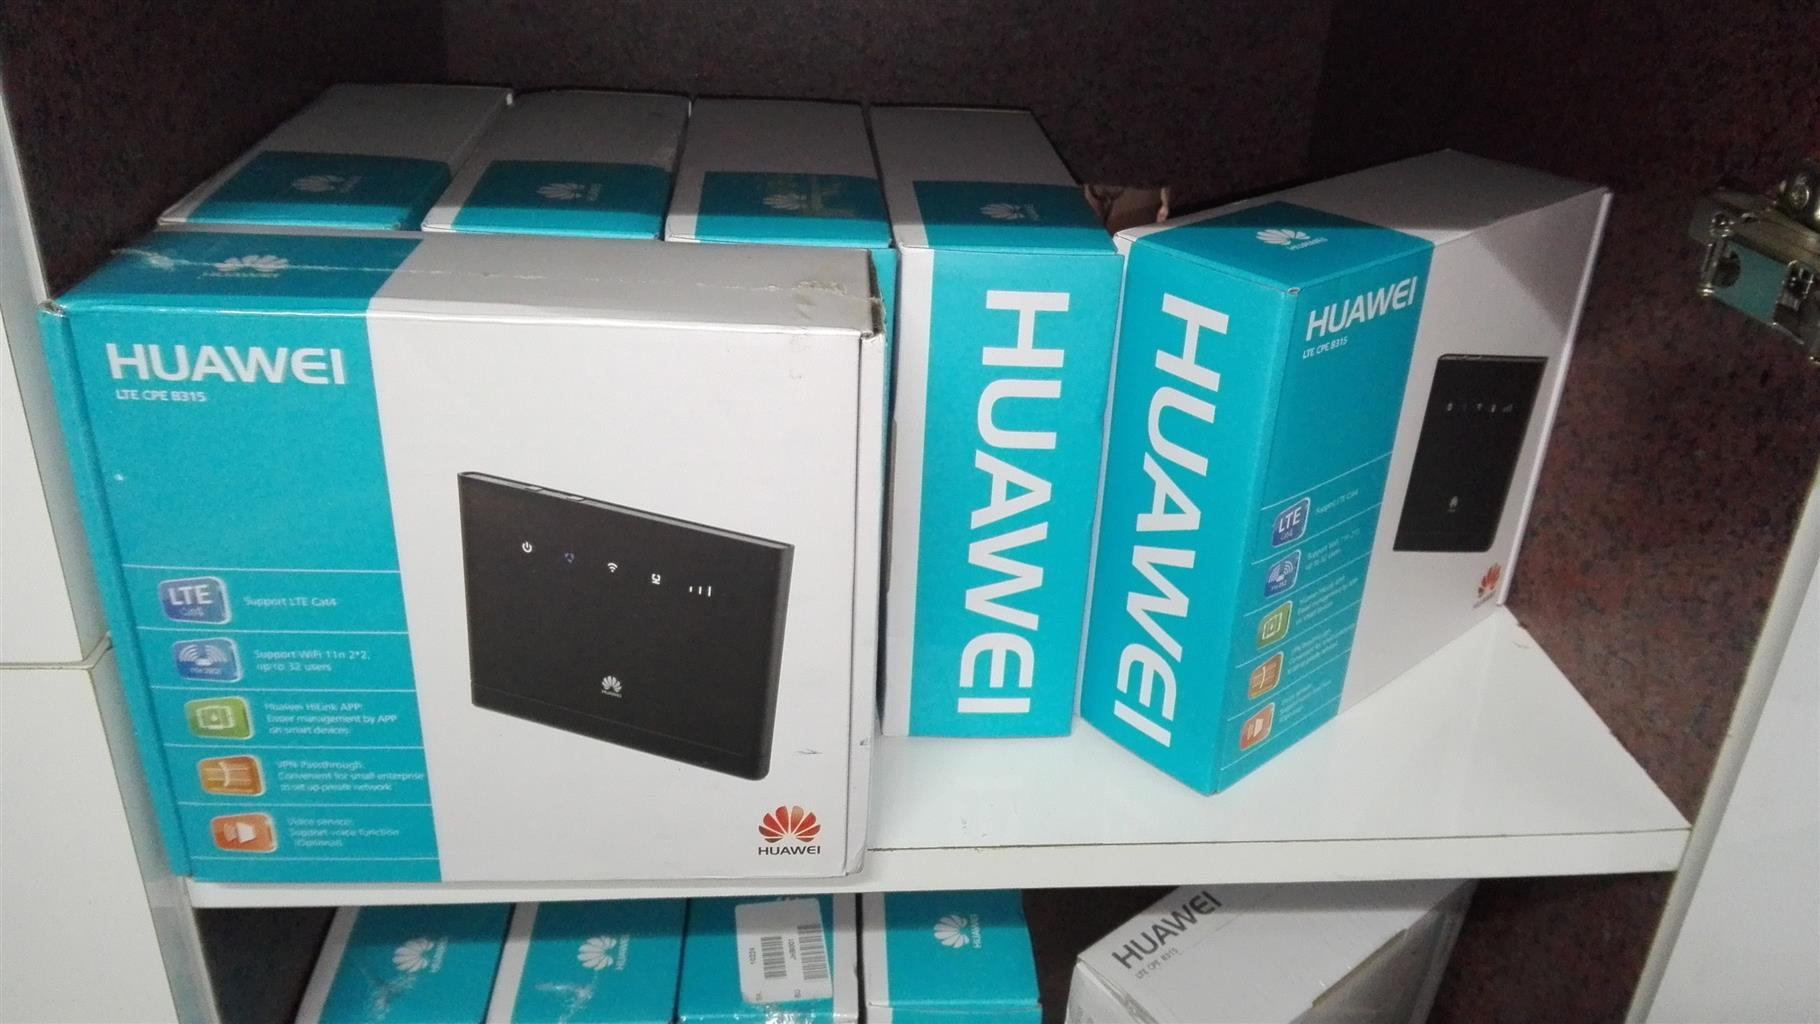 Huawei B315s-936 4G LTE Wi-Fi Router